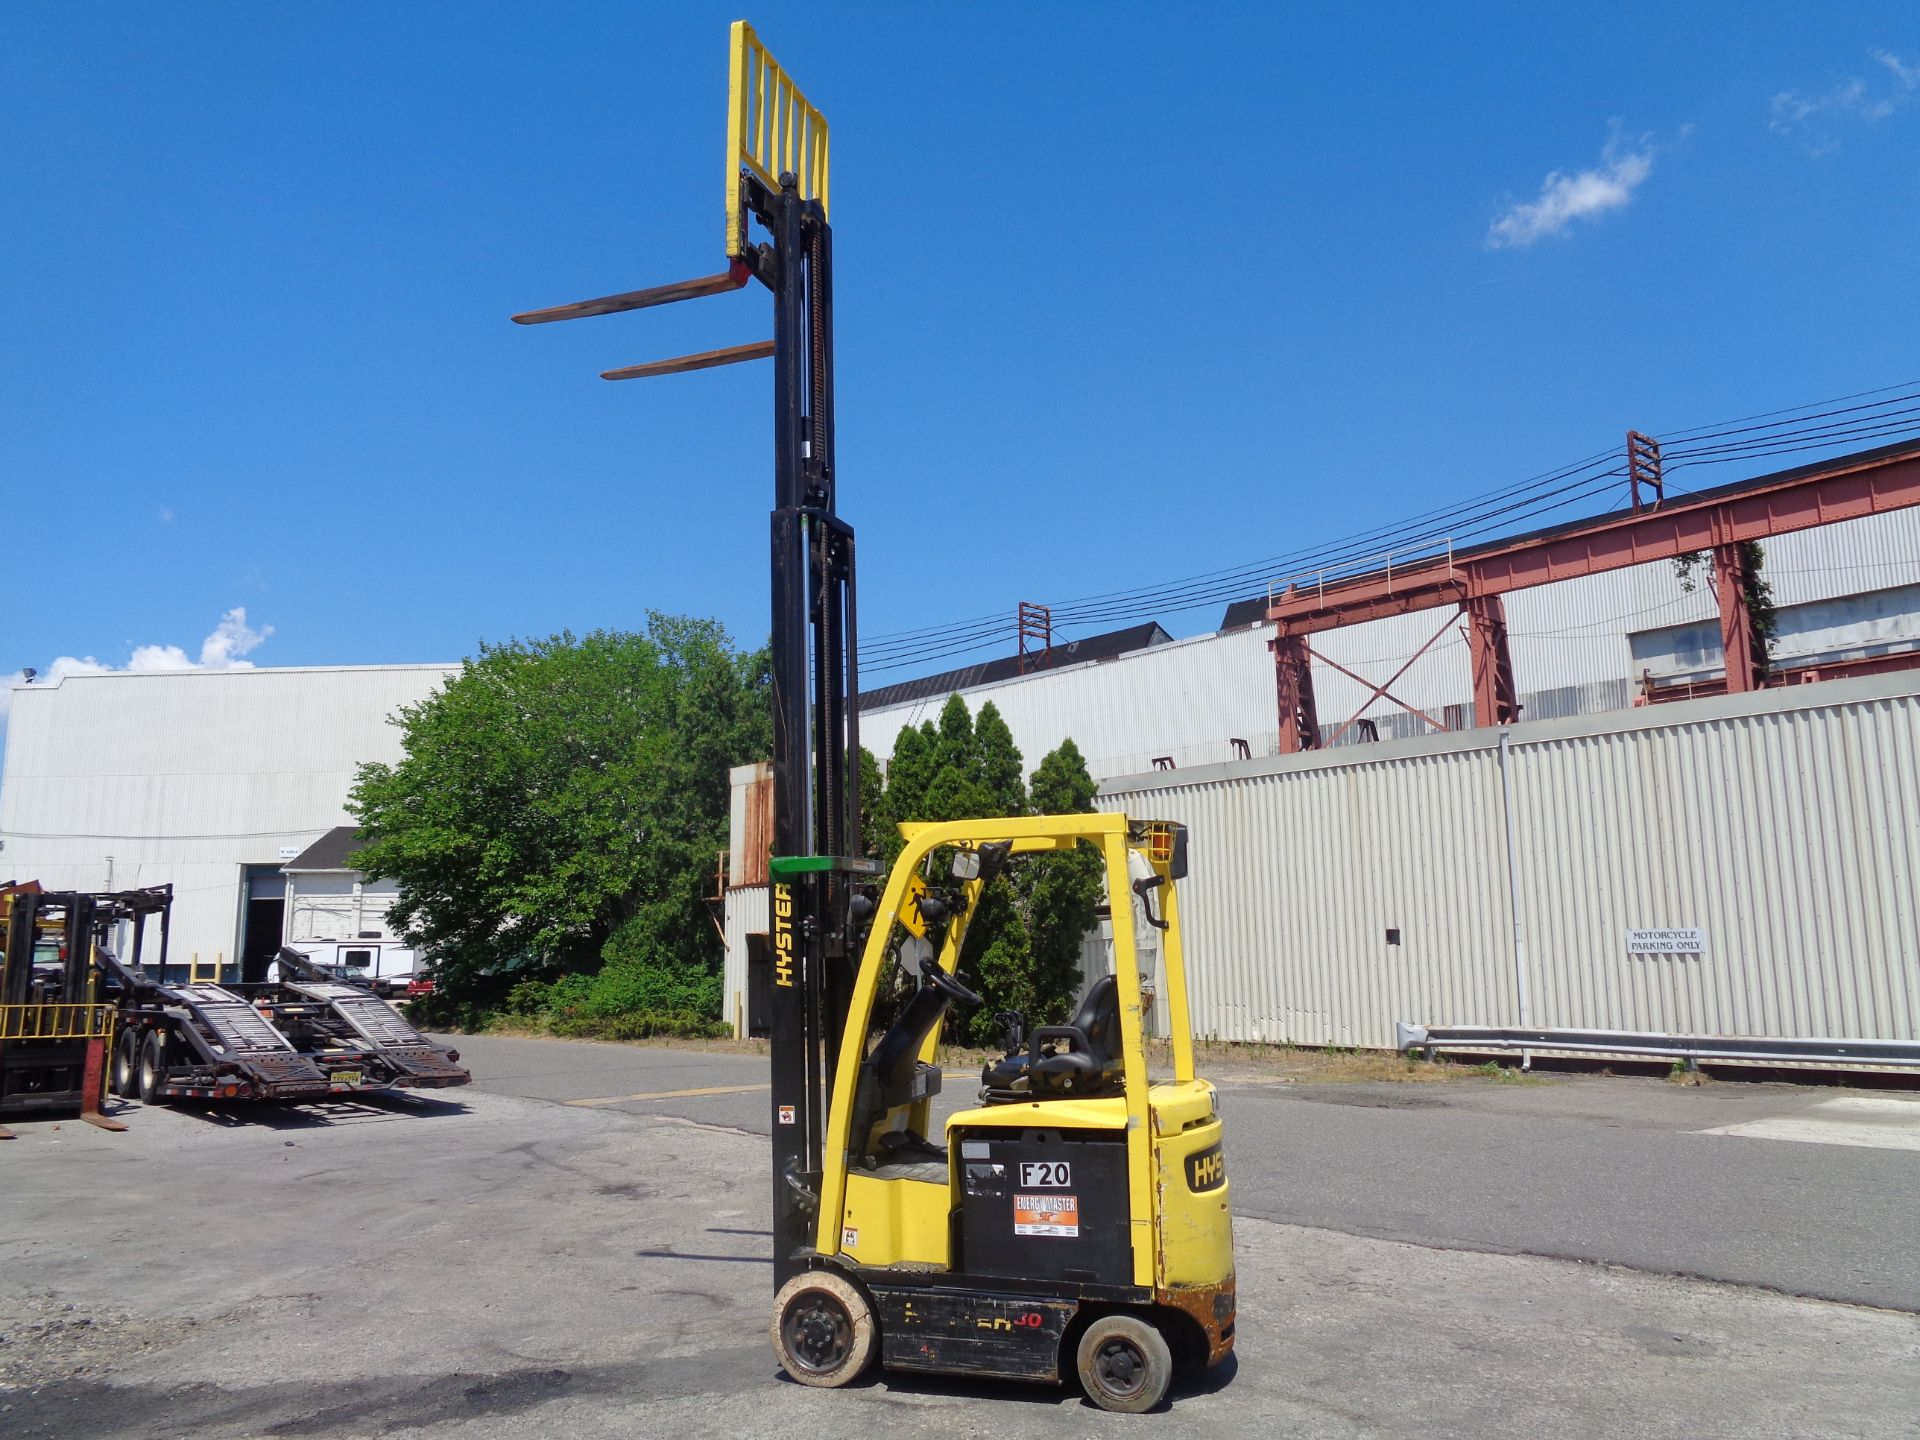 2016 Hyster E30XN 3,000lb Forklift - Image 14 of 18